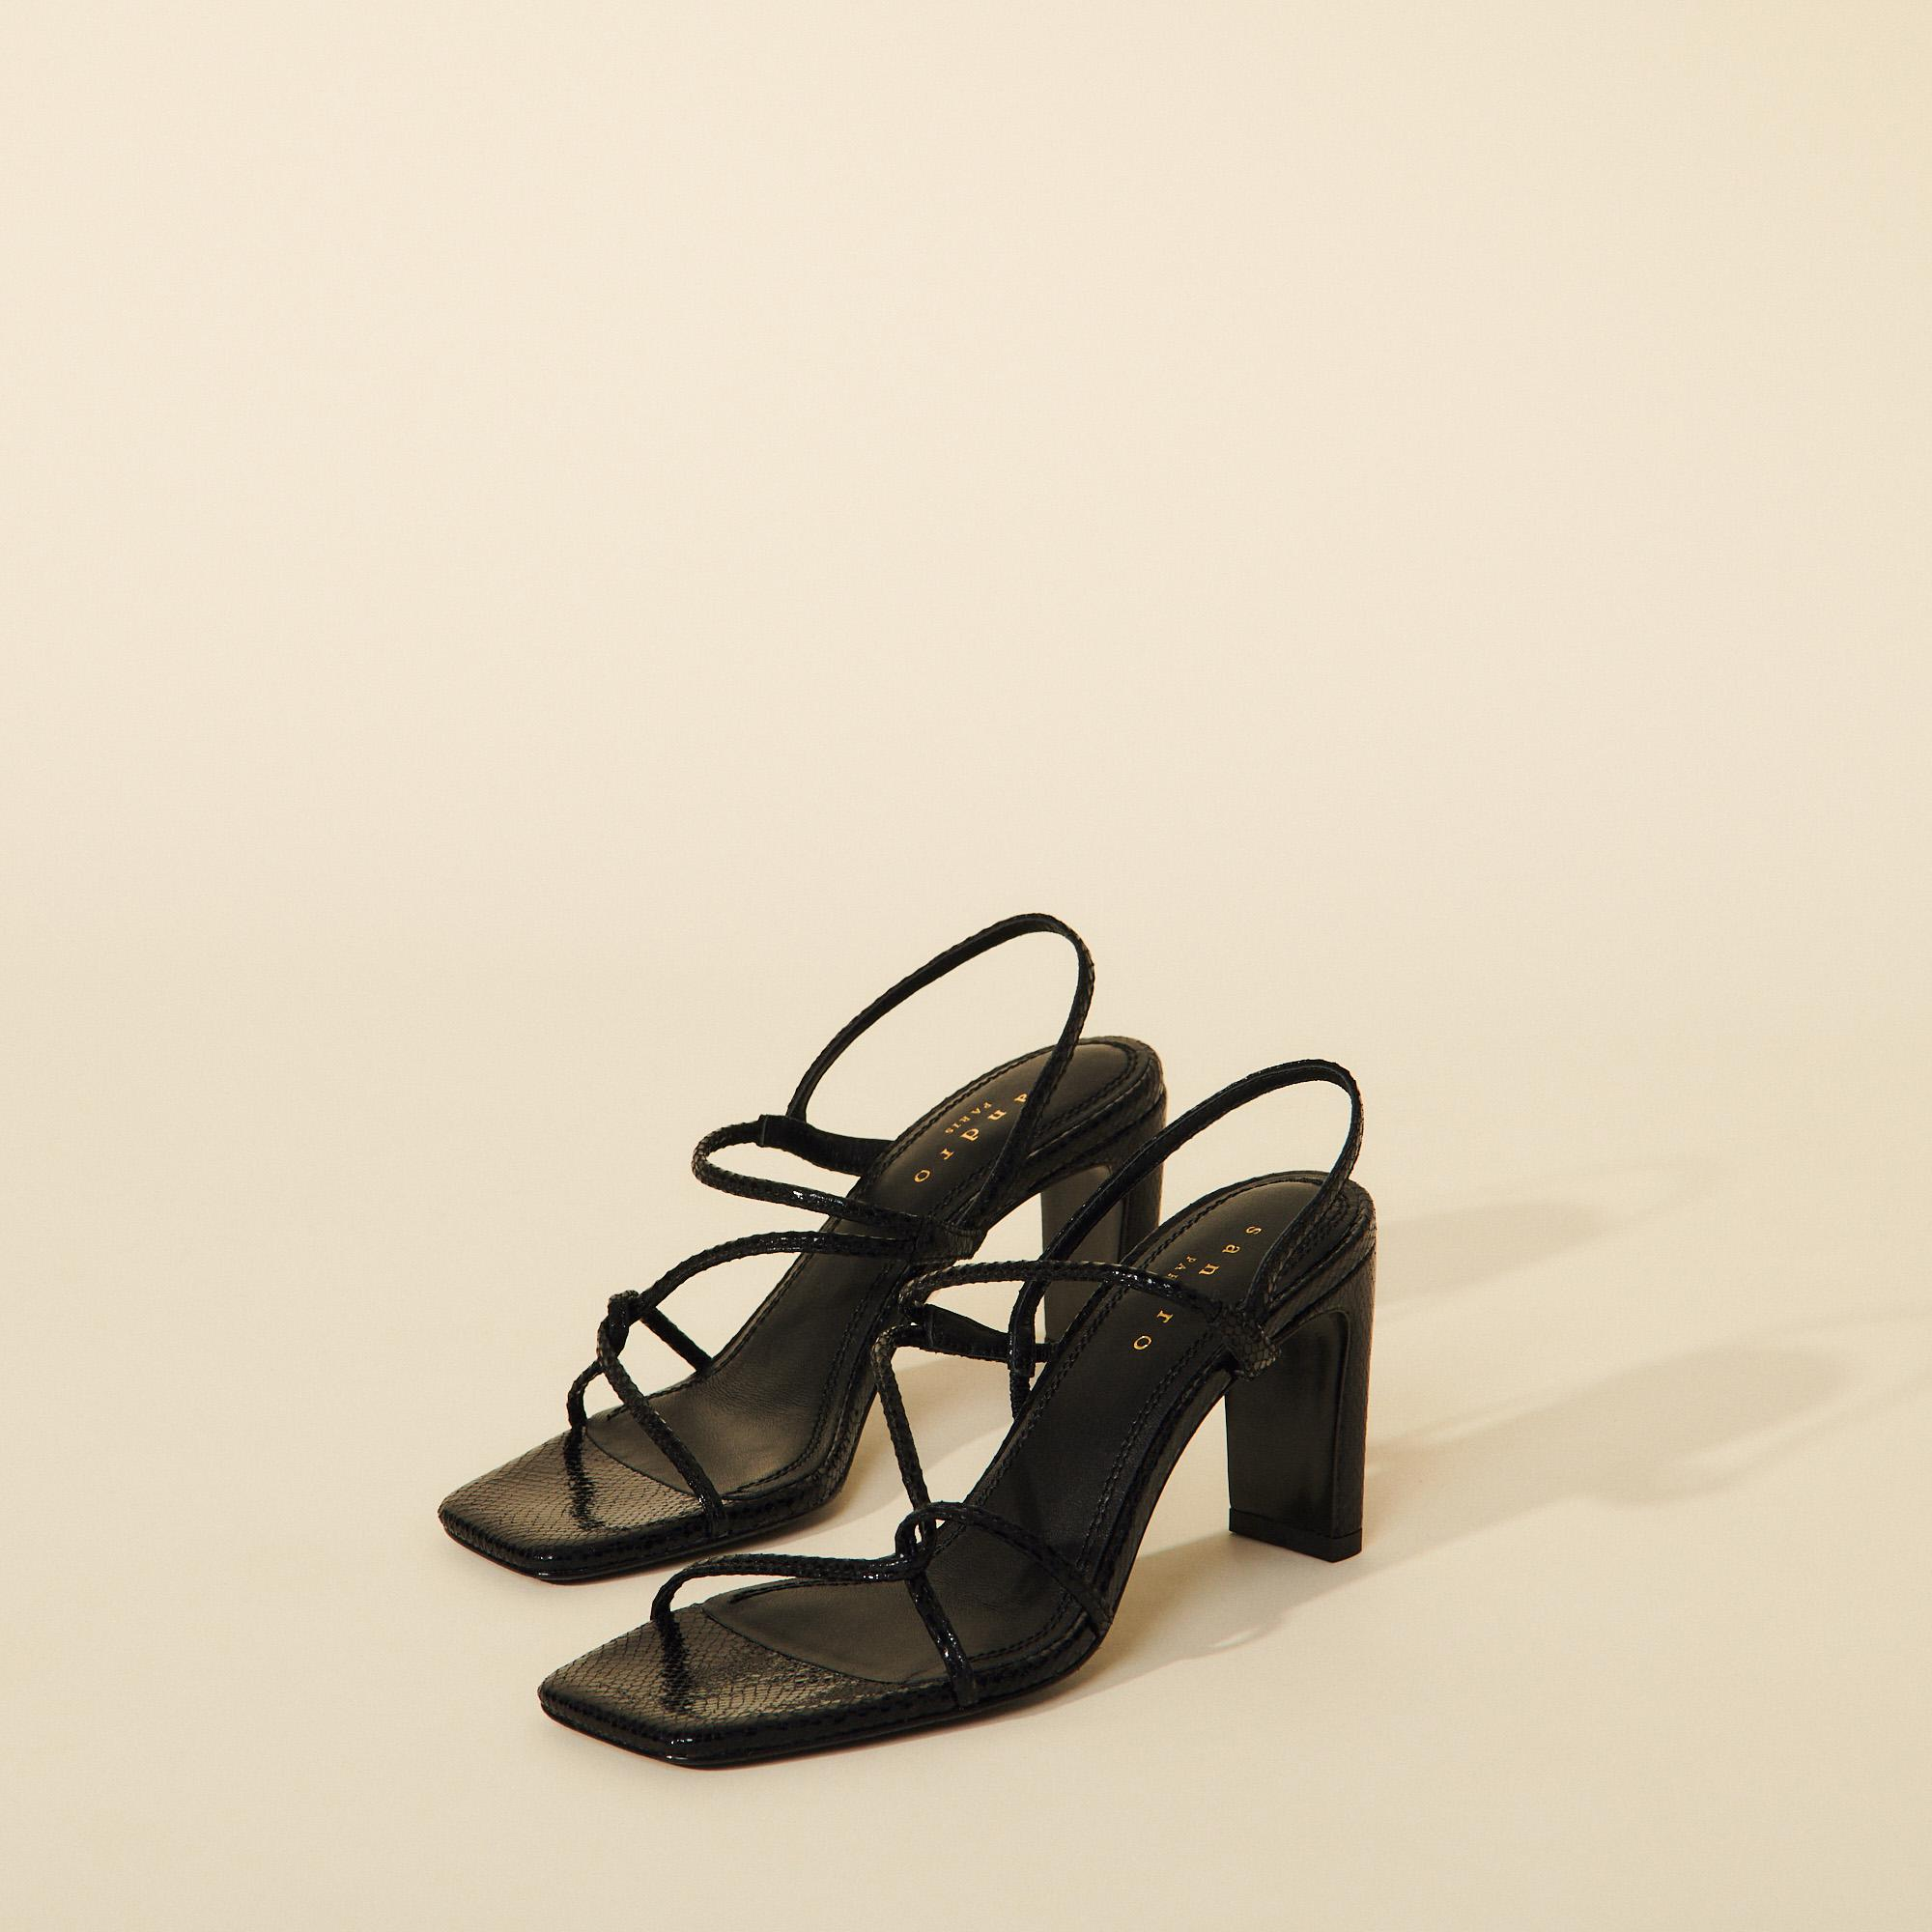 Sandals with narrow straps